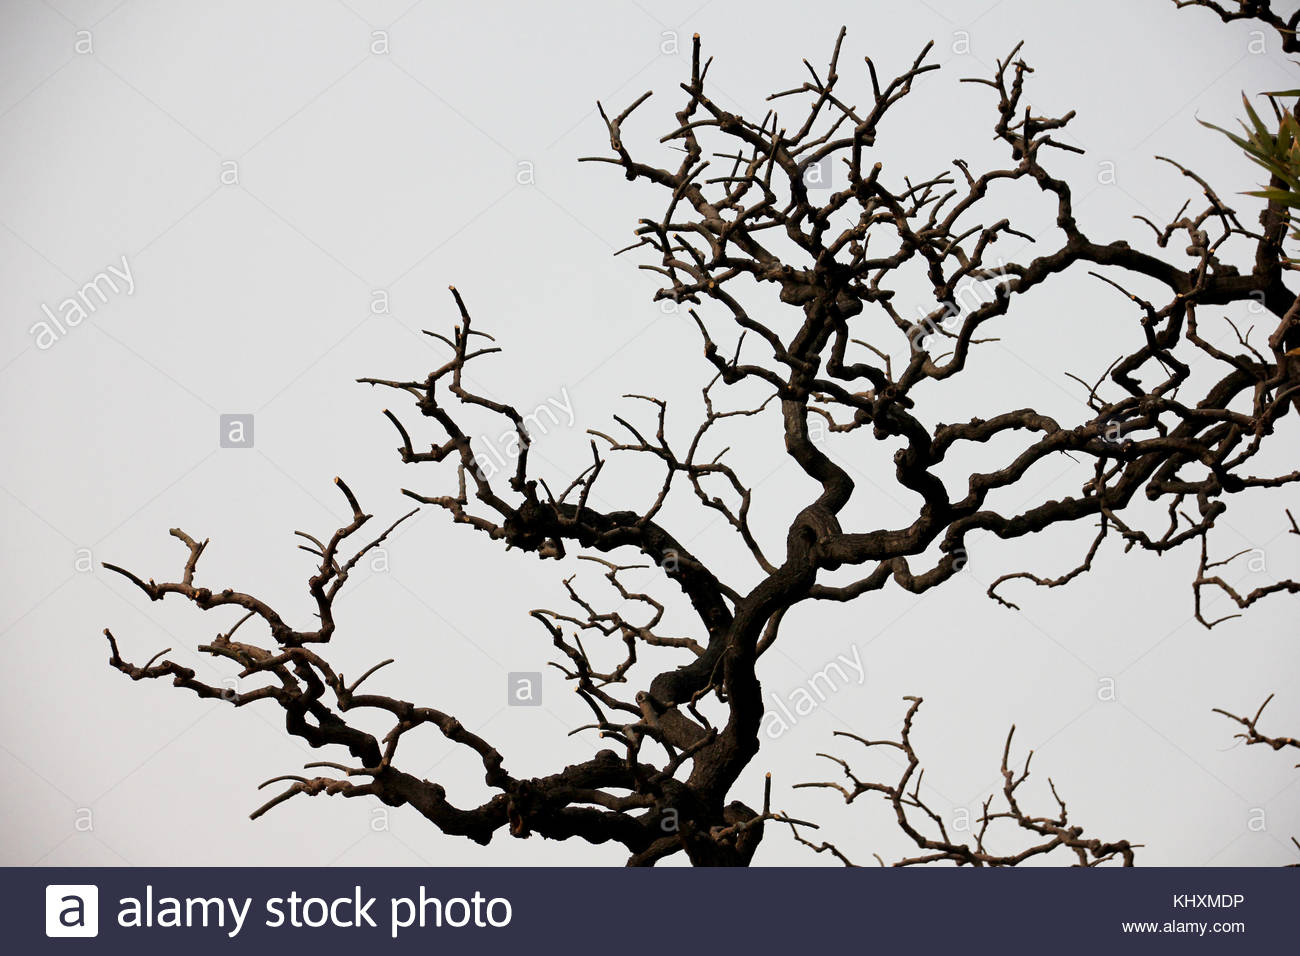 The old tree - Stock Image